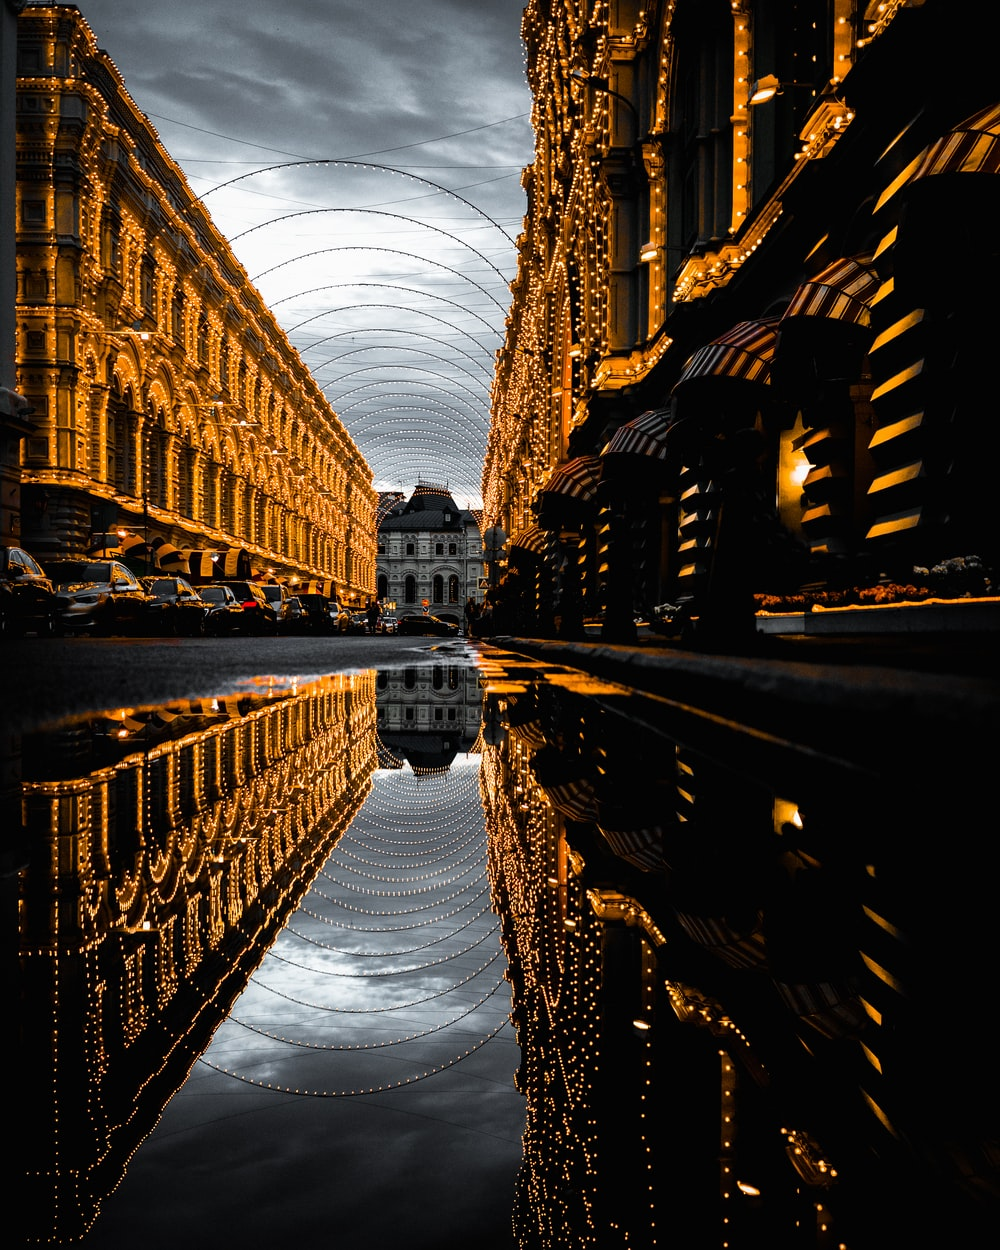 water on asphalt road with reflection of fully-decorated buildings under cloudy sky